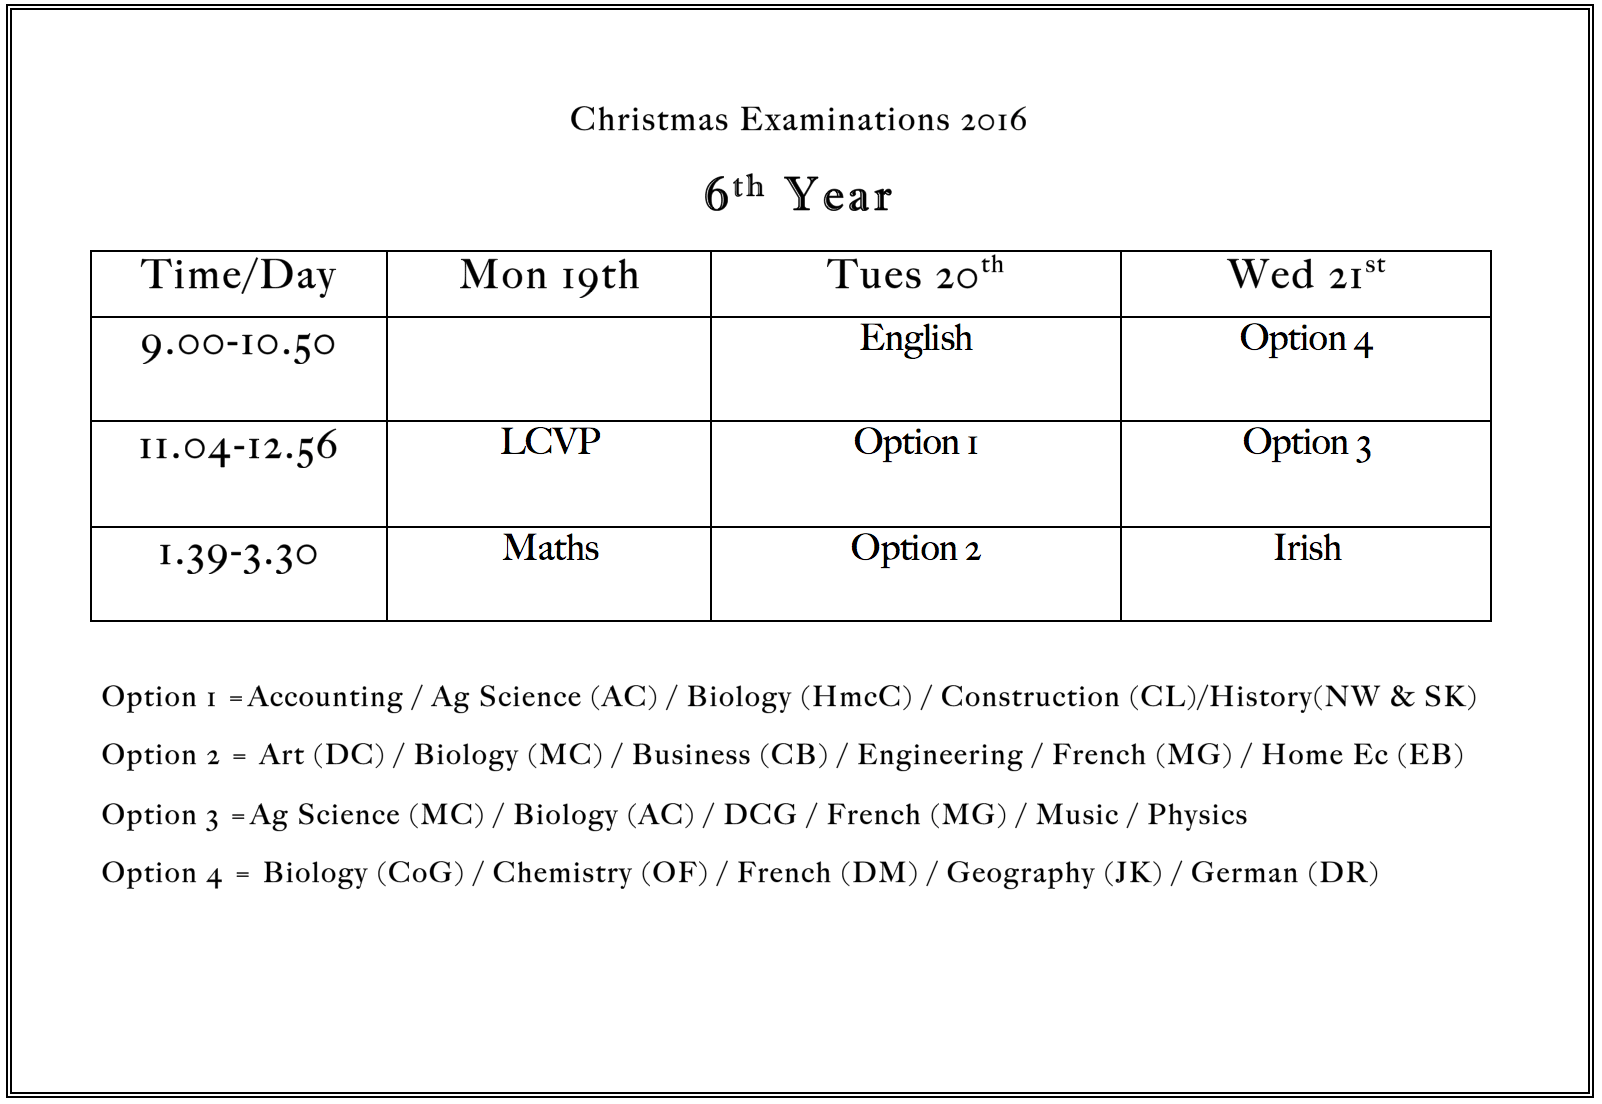 Dec 2016: Christmas Exam Time Table for 6th Year Students